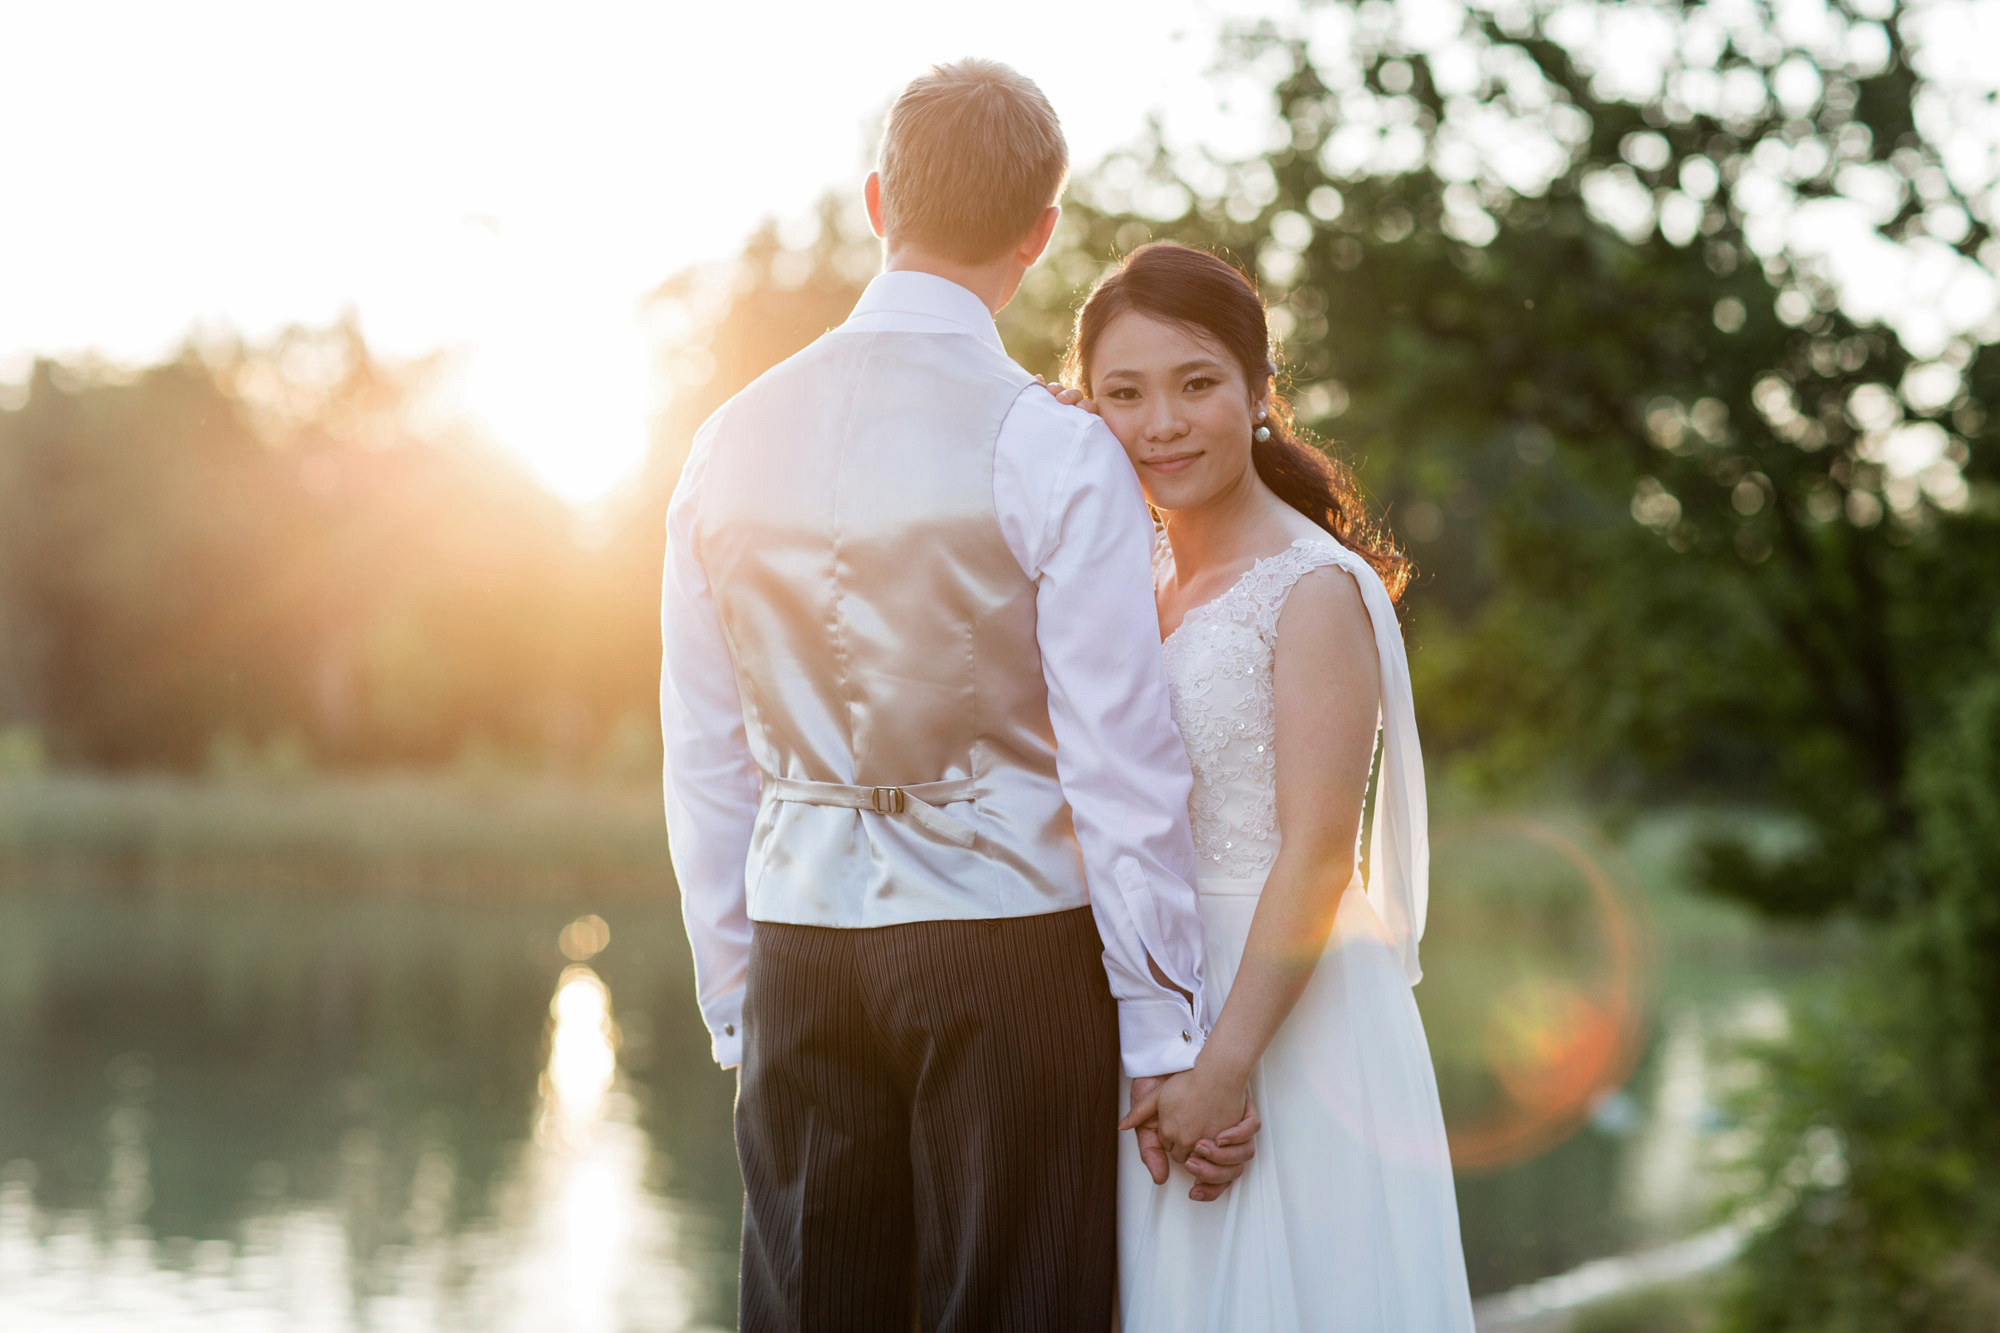 wedding portraits at marholmen